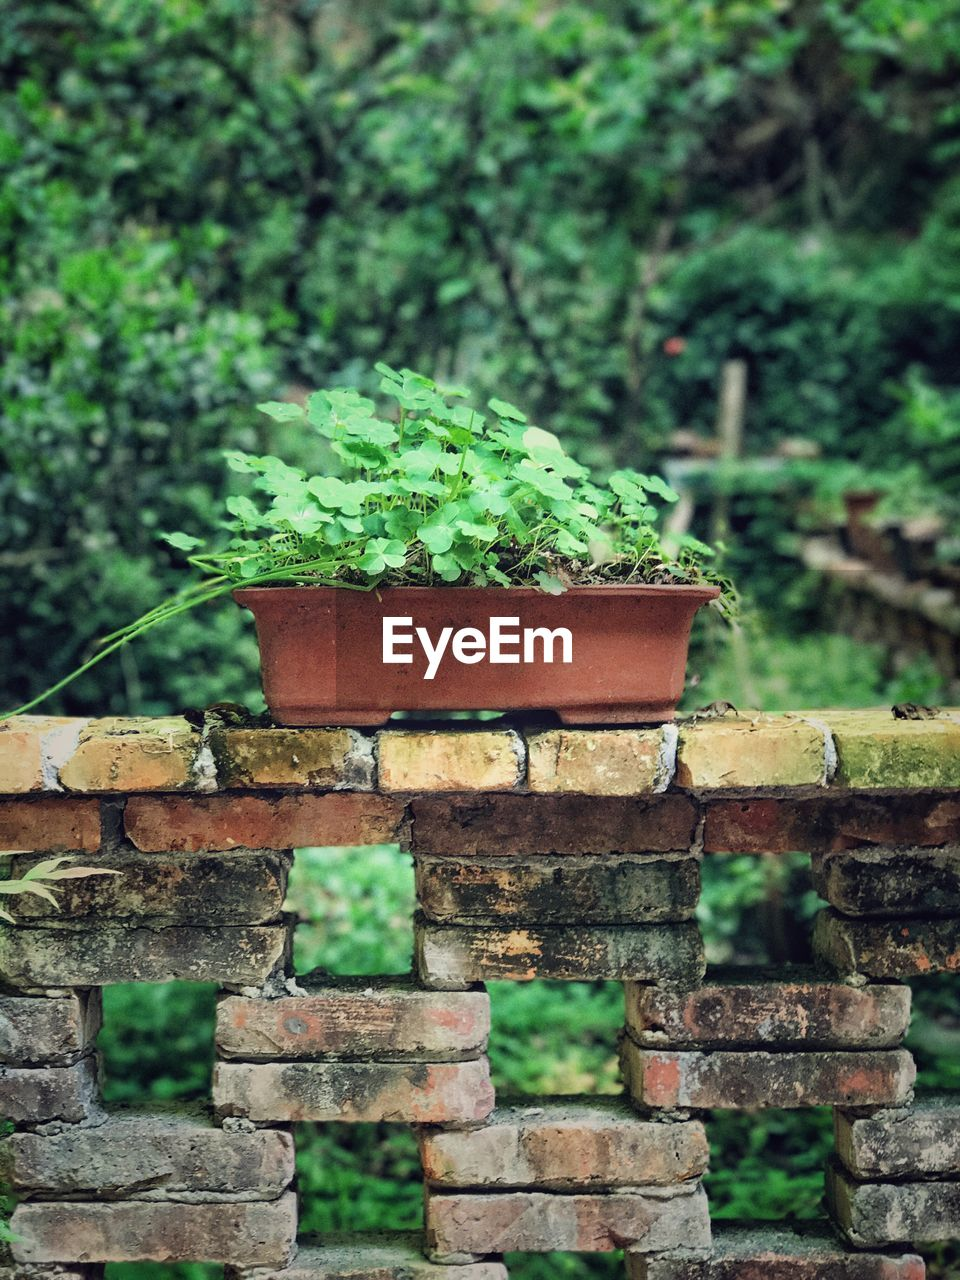 plant, day, green color, growth, nature, focus on foreground, no people, outdoors, wood - material, close-up, wall, land, selective focus, built structure, tree, brick, architecture, front or back yard, beauty in nature, brick wall